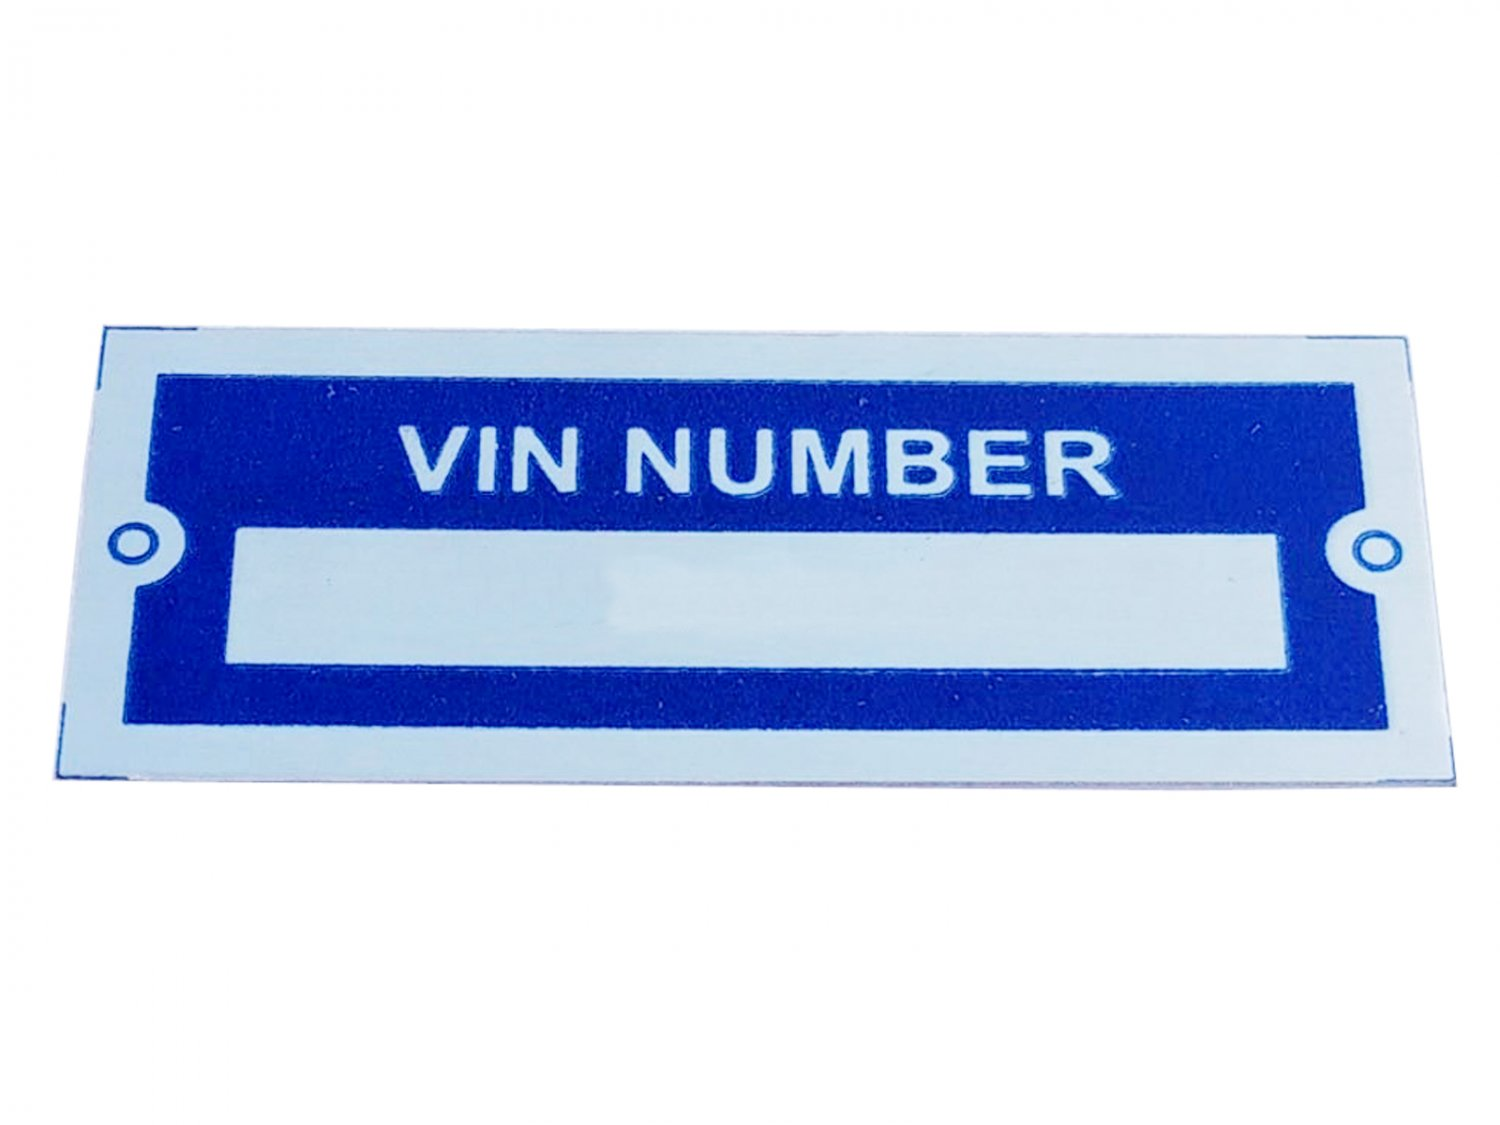 New Aluminium Number Blank VIN NUMBER Blue Plate Data/Tag Small